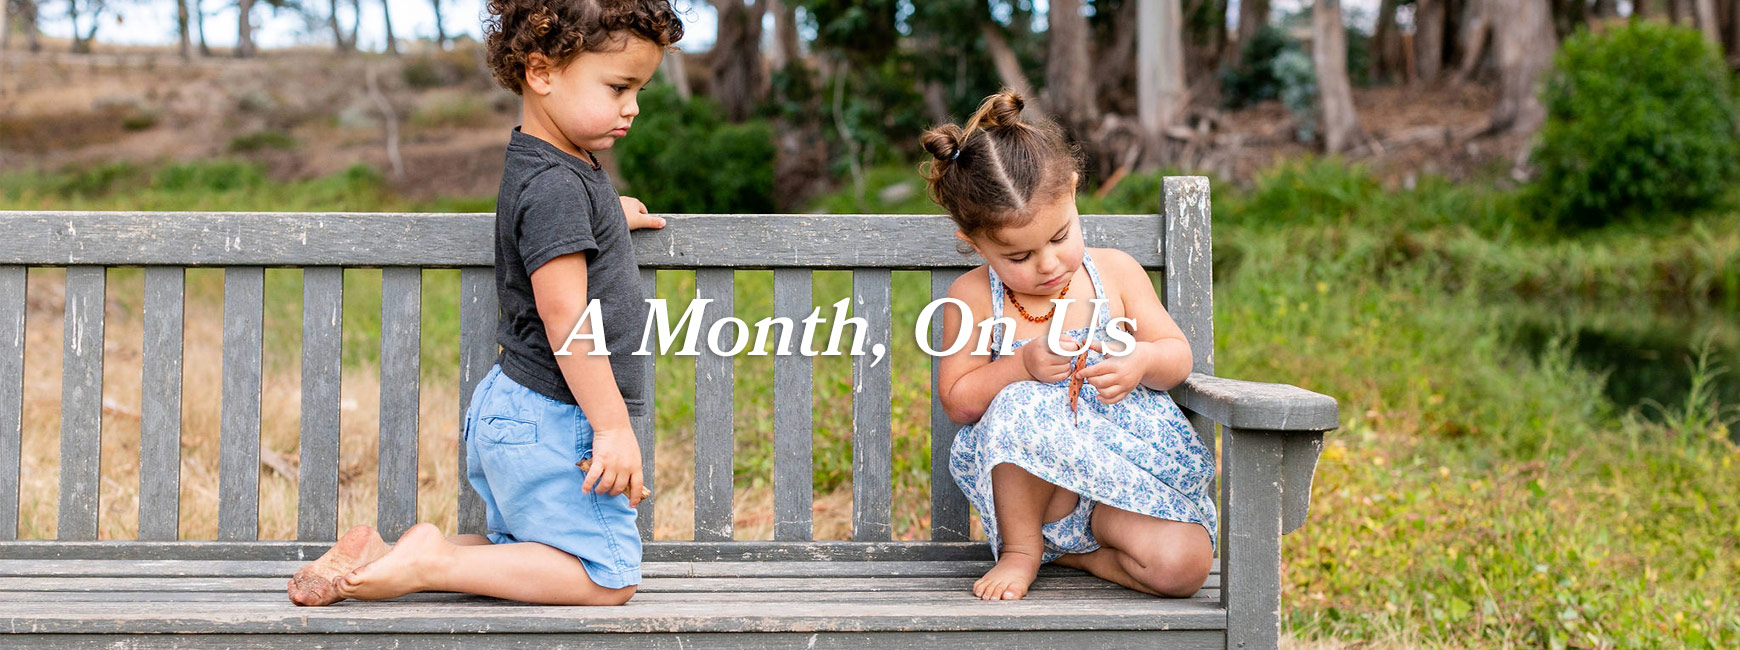 A Month, On Us